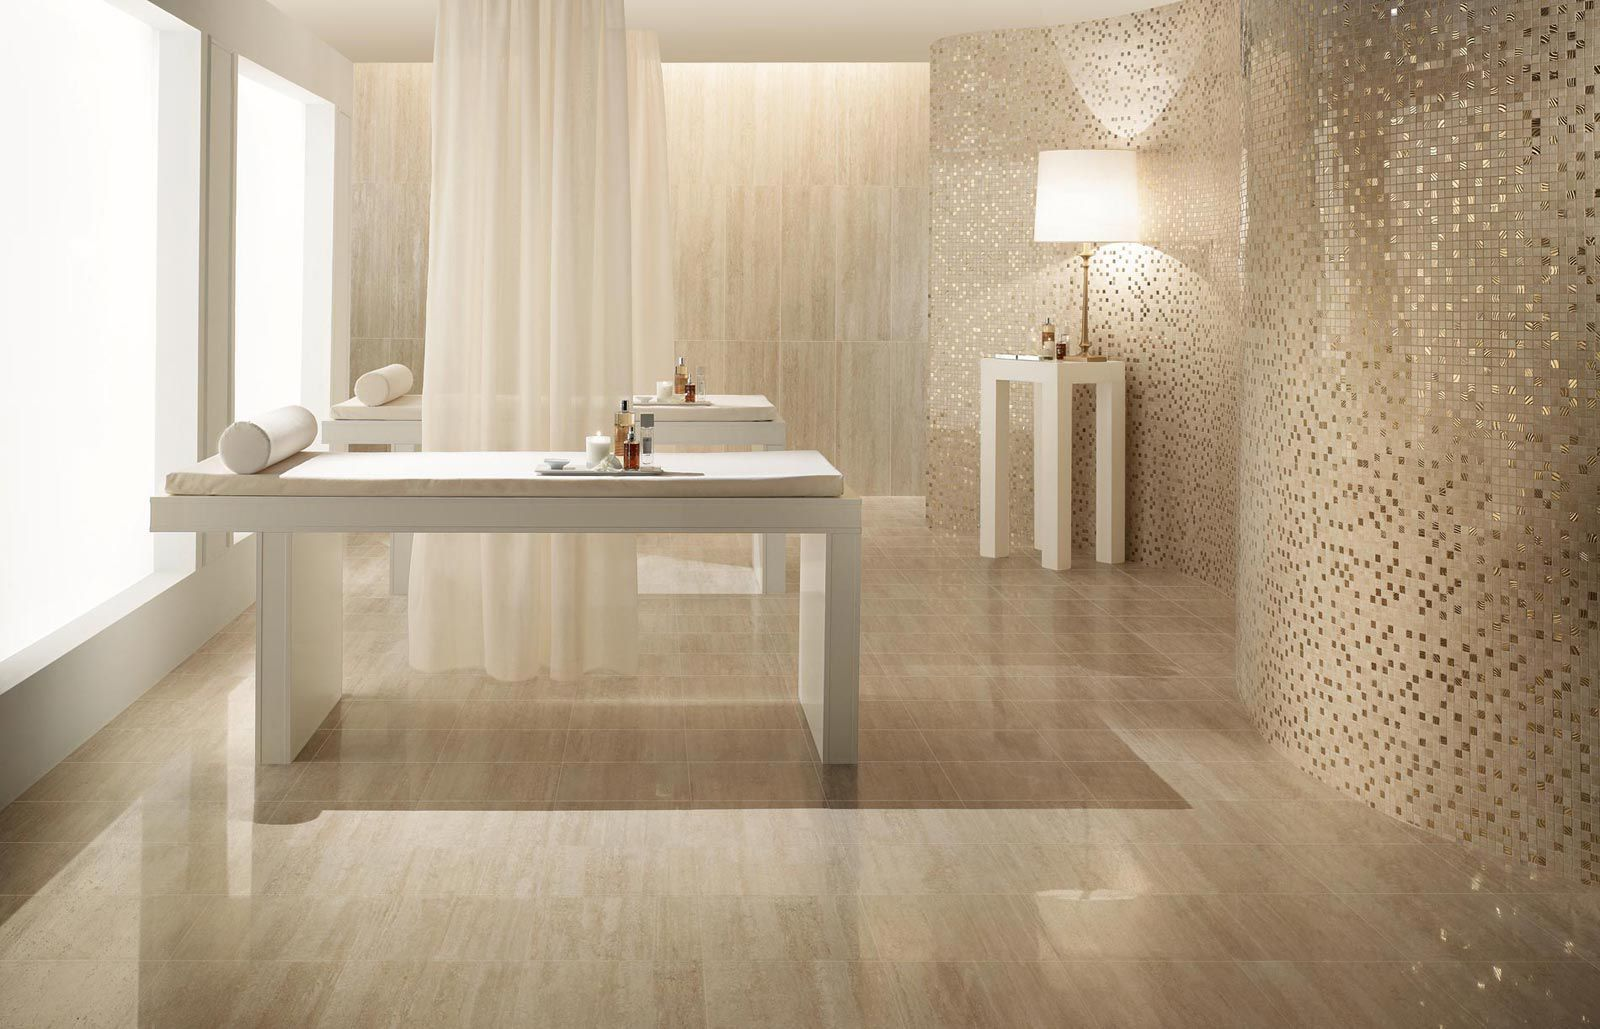 Indoor tile wall floor porcelain stoneware royale love indoor tile wall floor porcelain stoneware dailygadgetfo Images